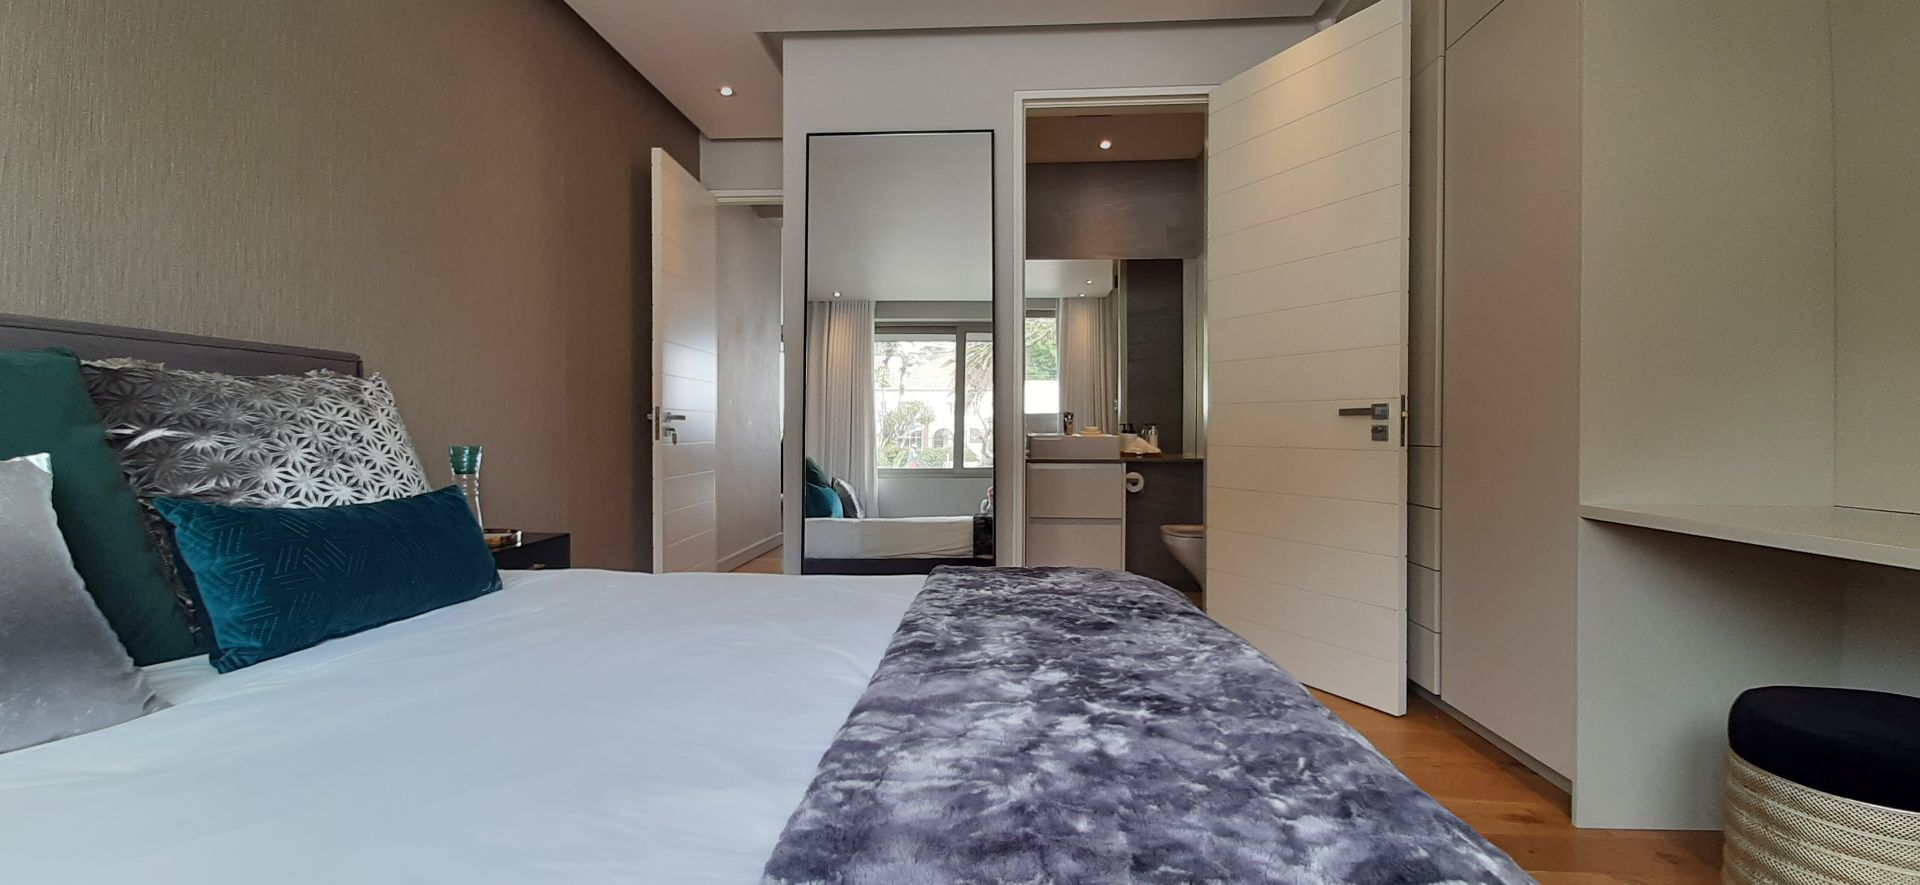 Apartment in Bantry Bay - Bedroom (4).jpg